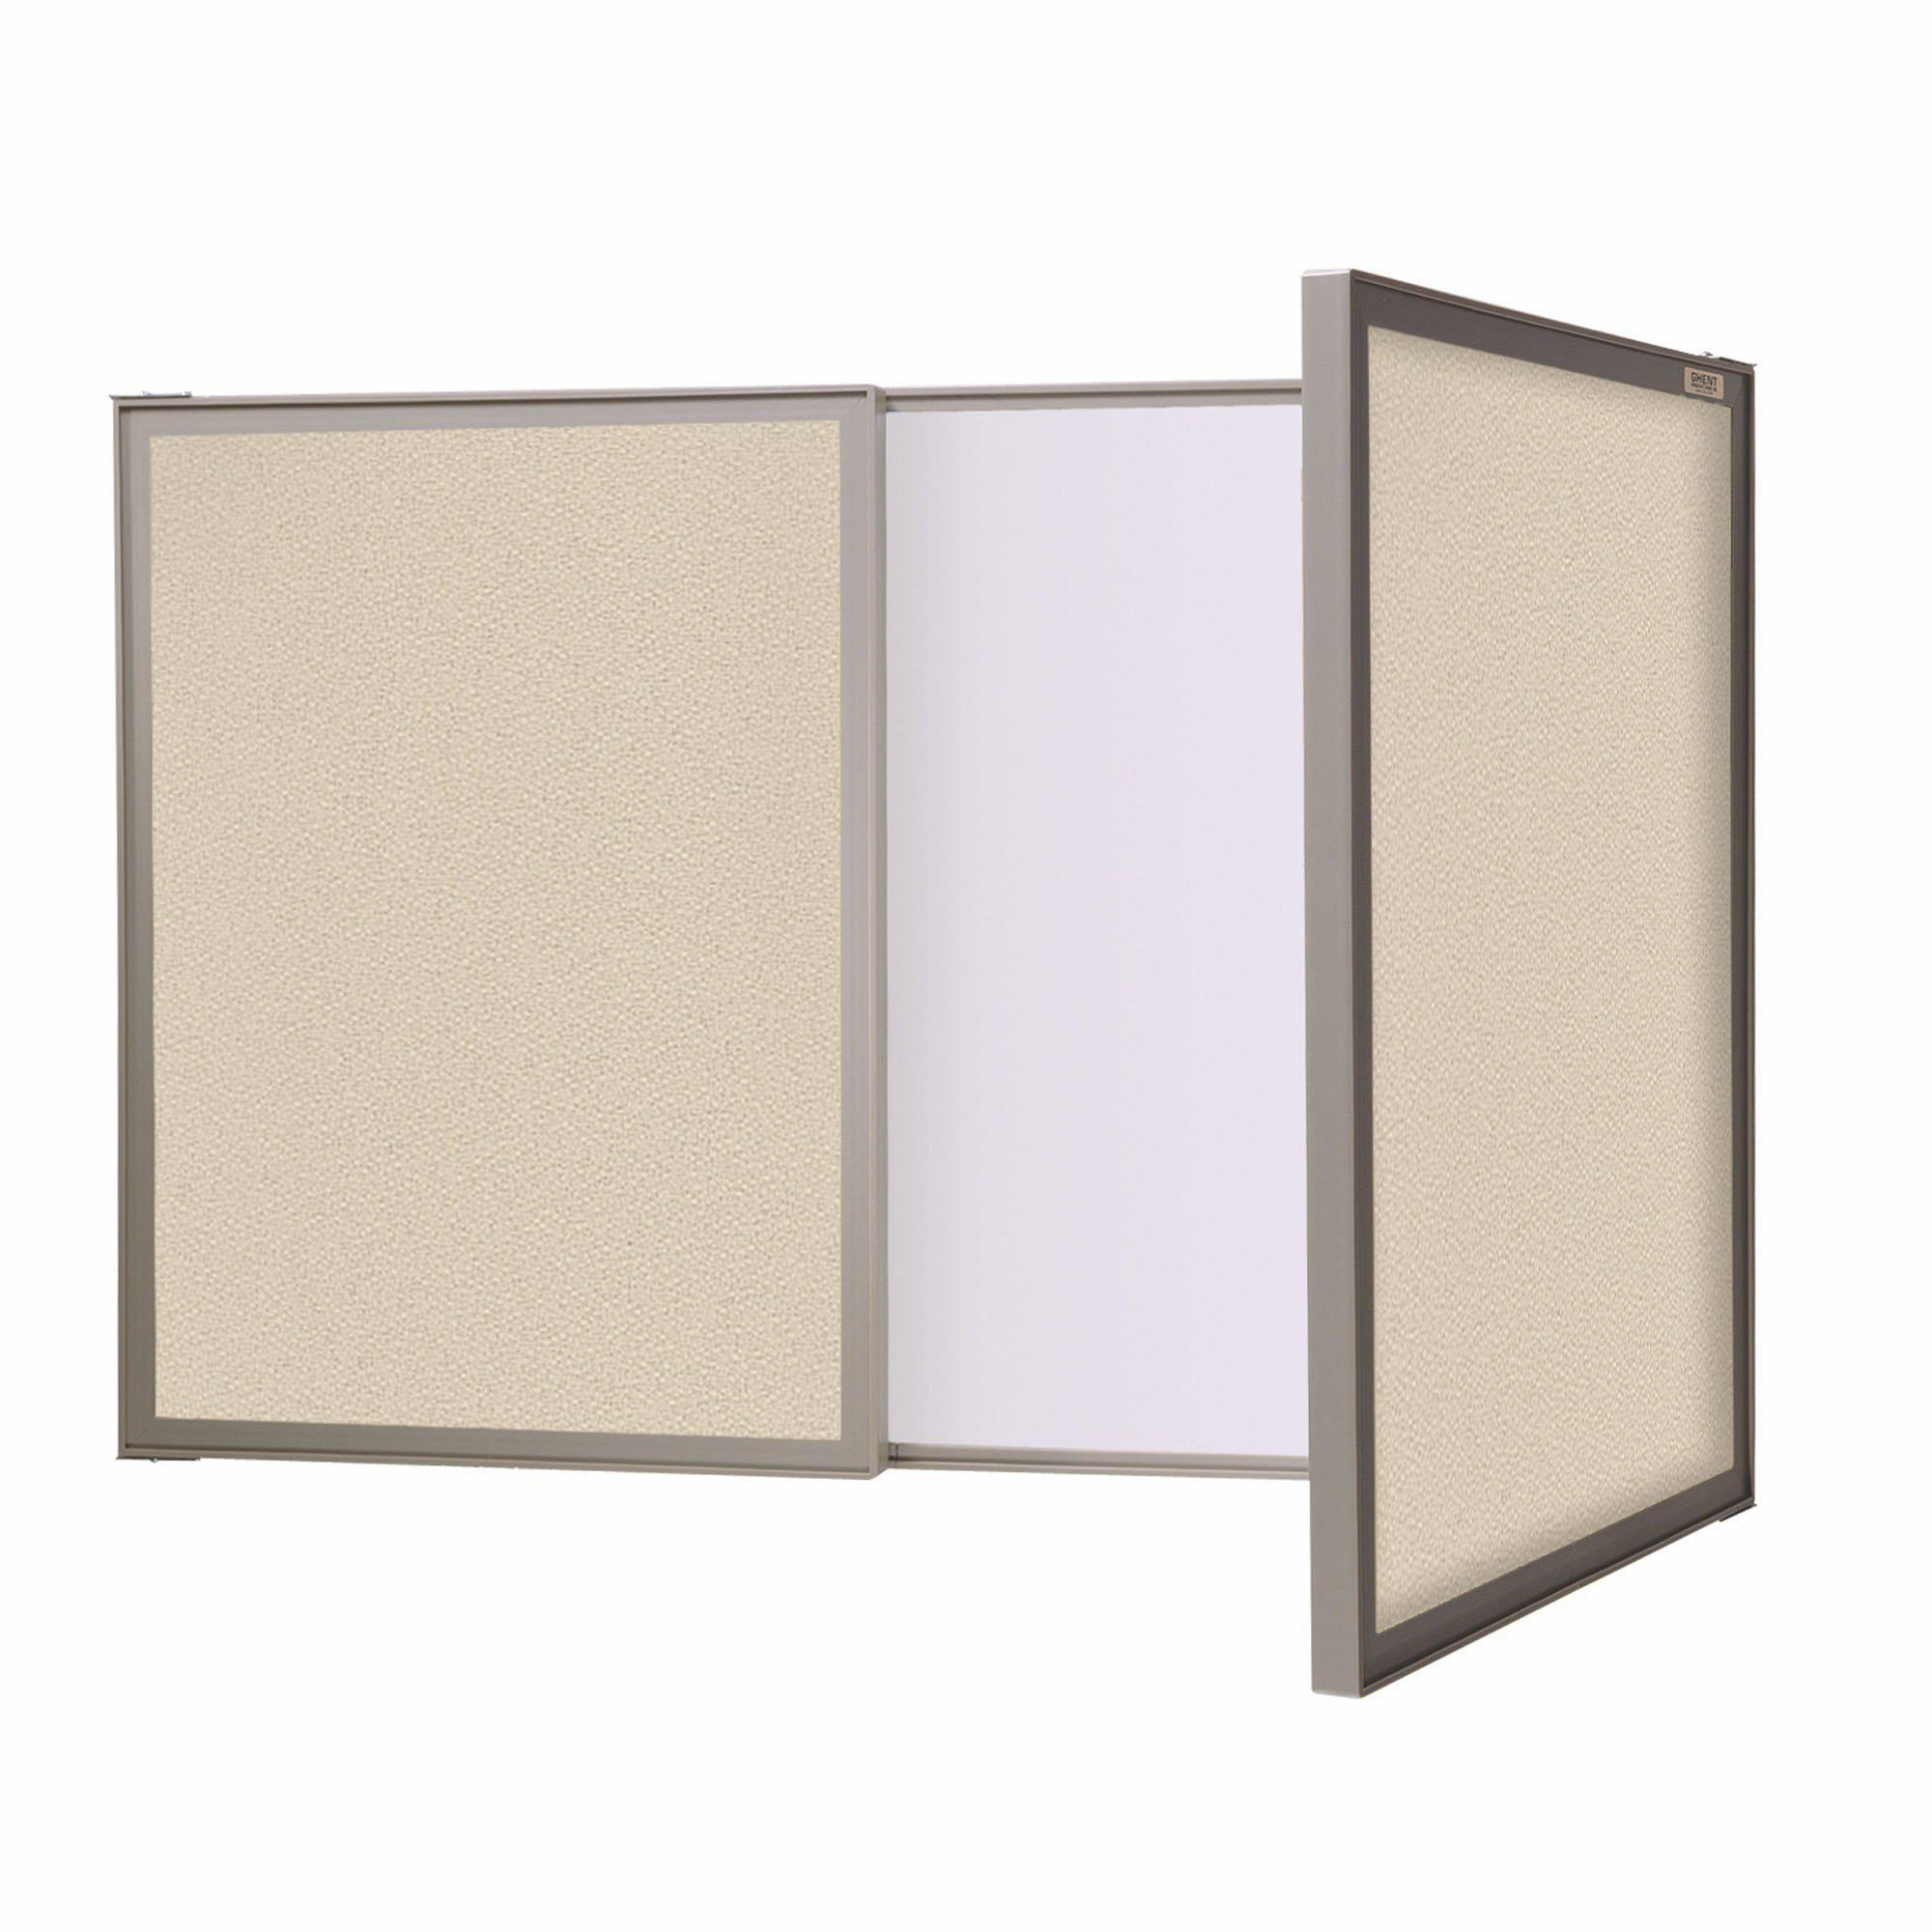 VisuALL PC Whiteboard Cabinet with Fabric Bulletin Board Exterior Doors-Boards-Beige-